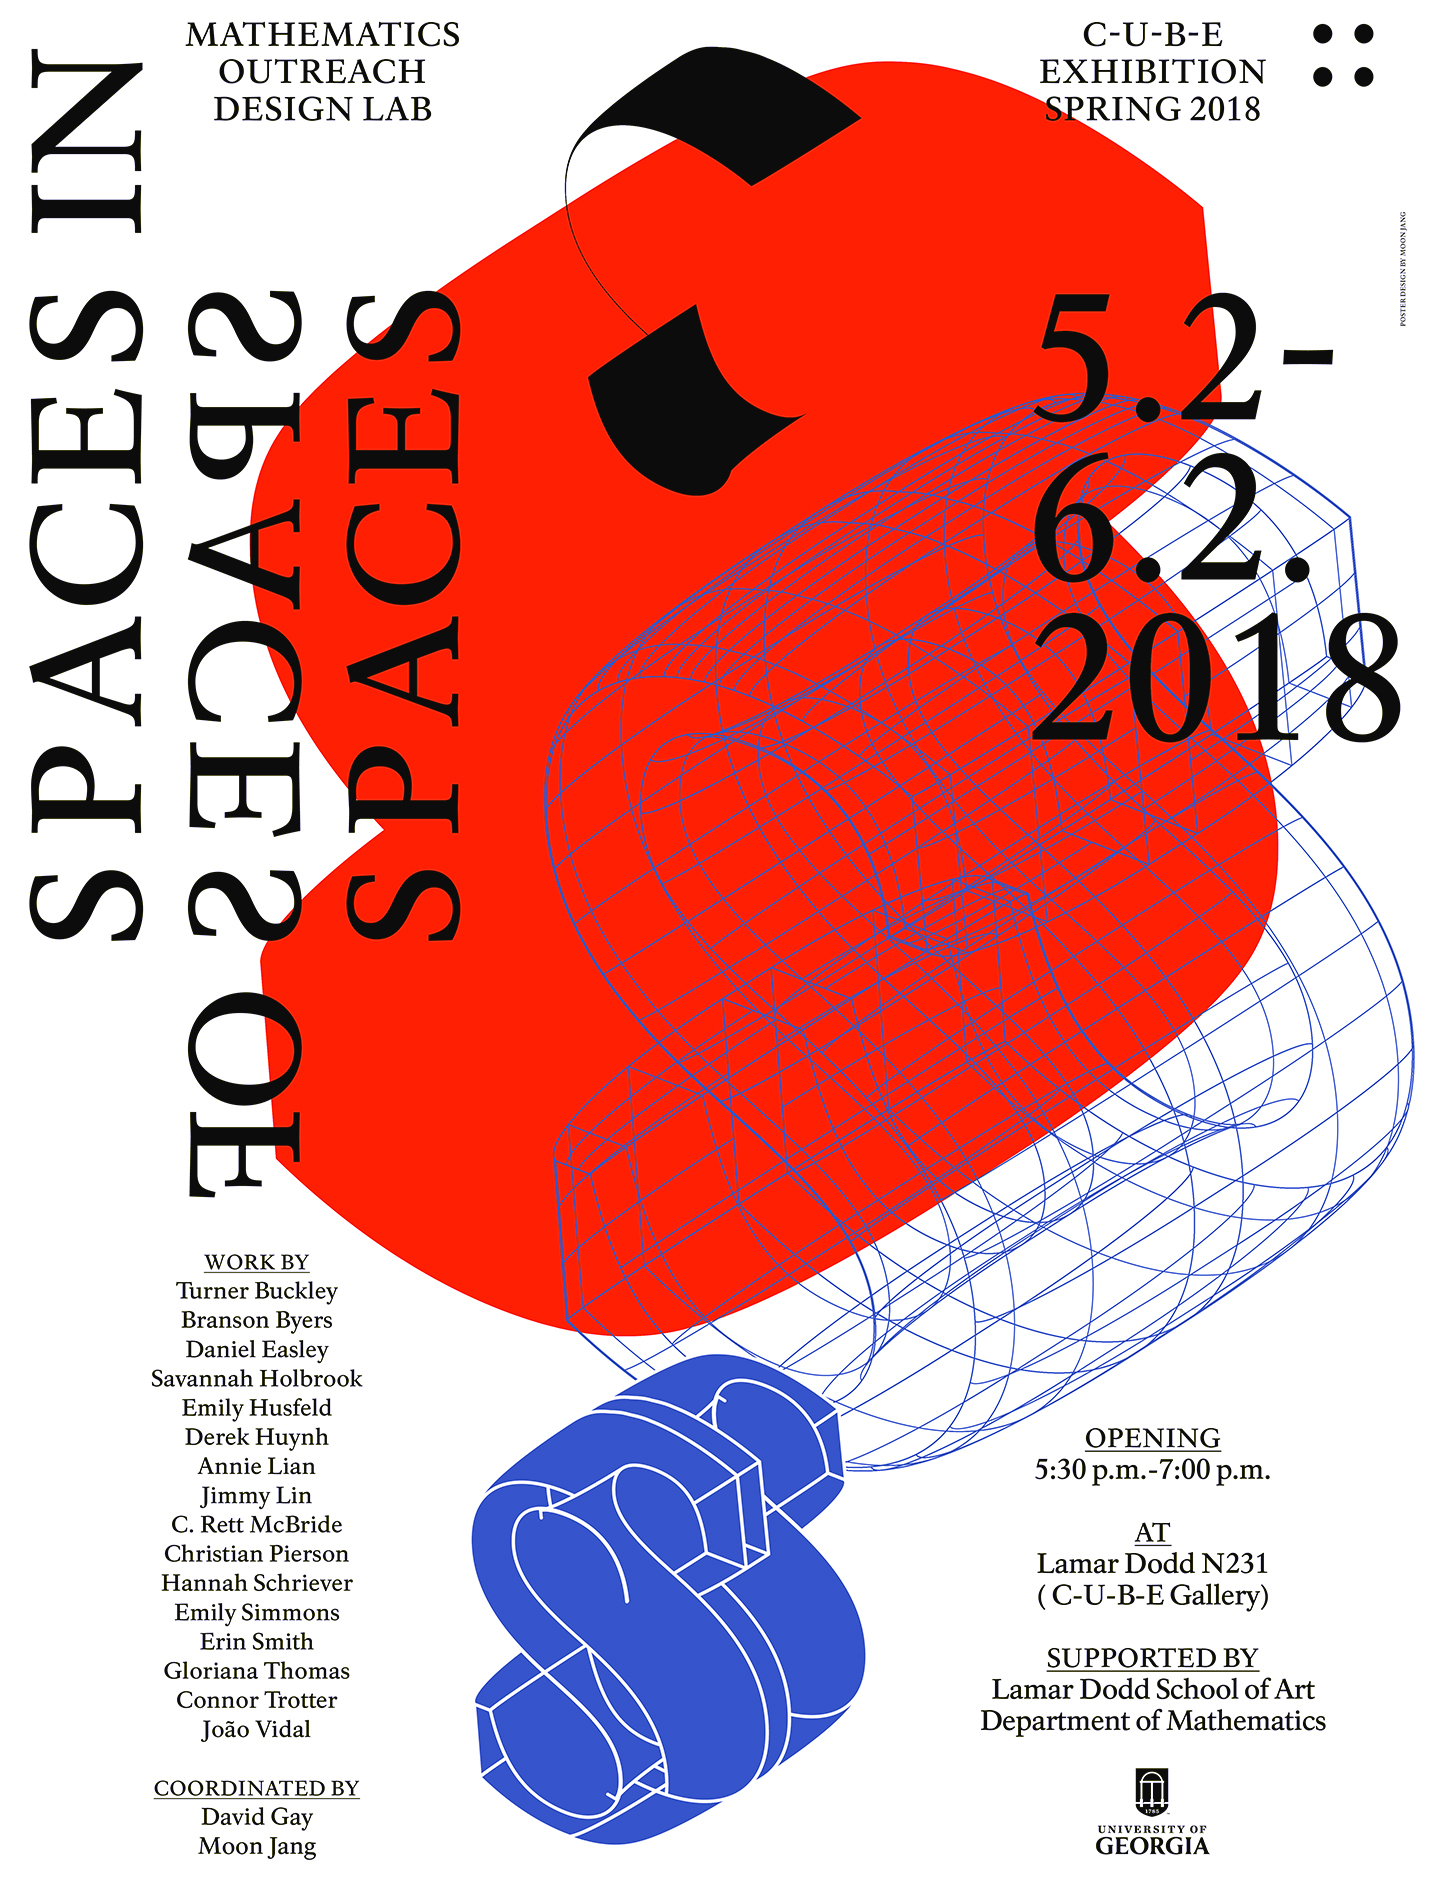 Spaces-MoonJang-2018UCDA.jpg